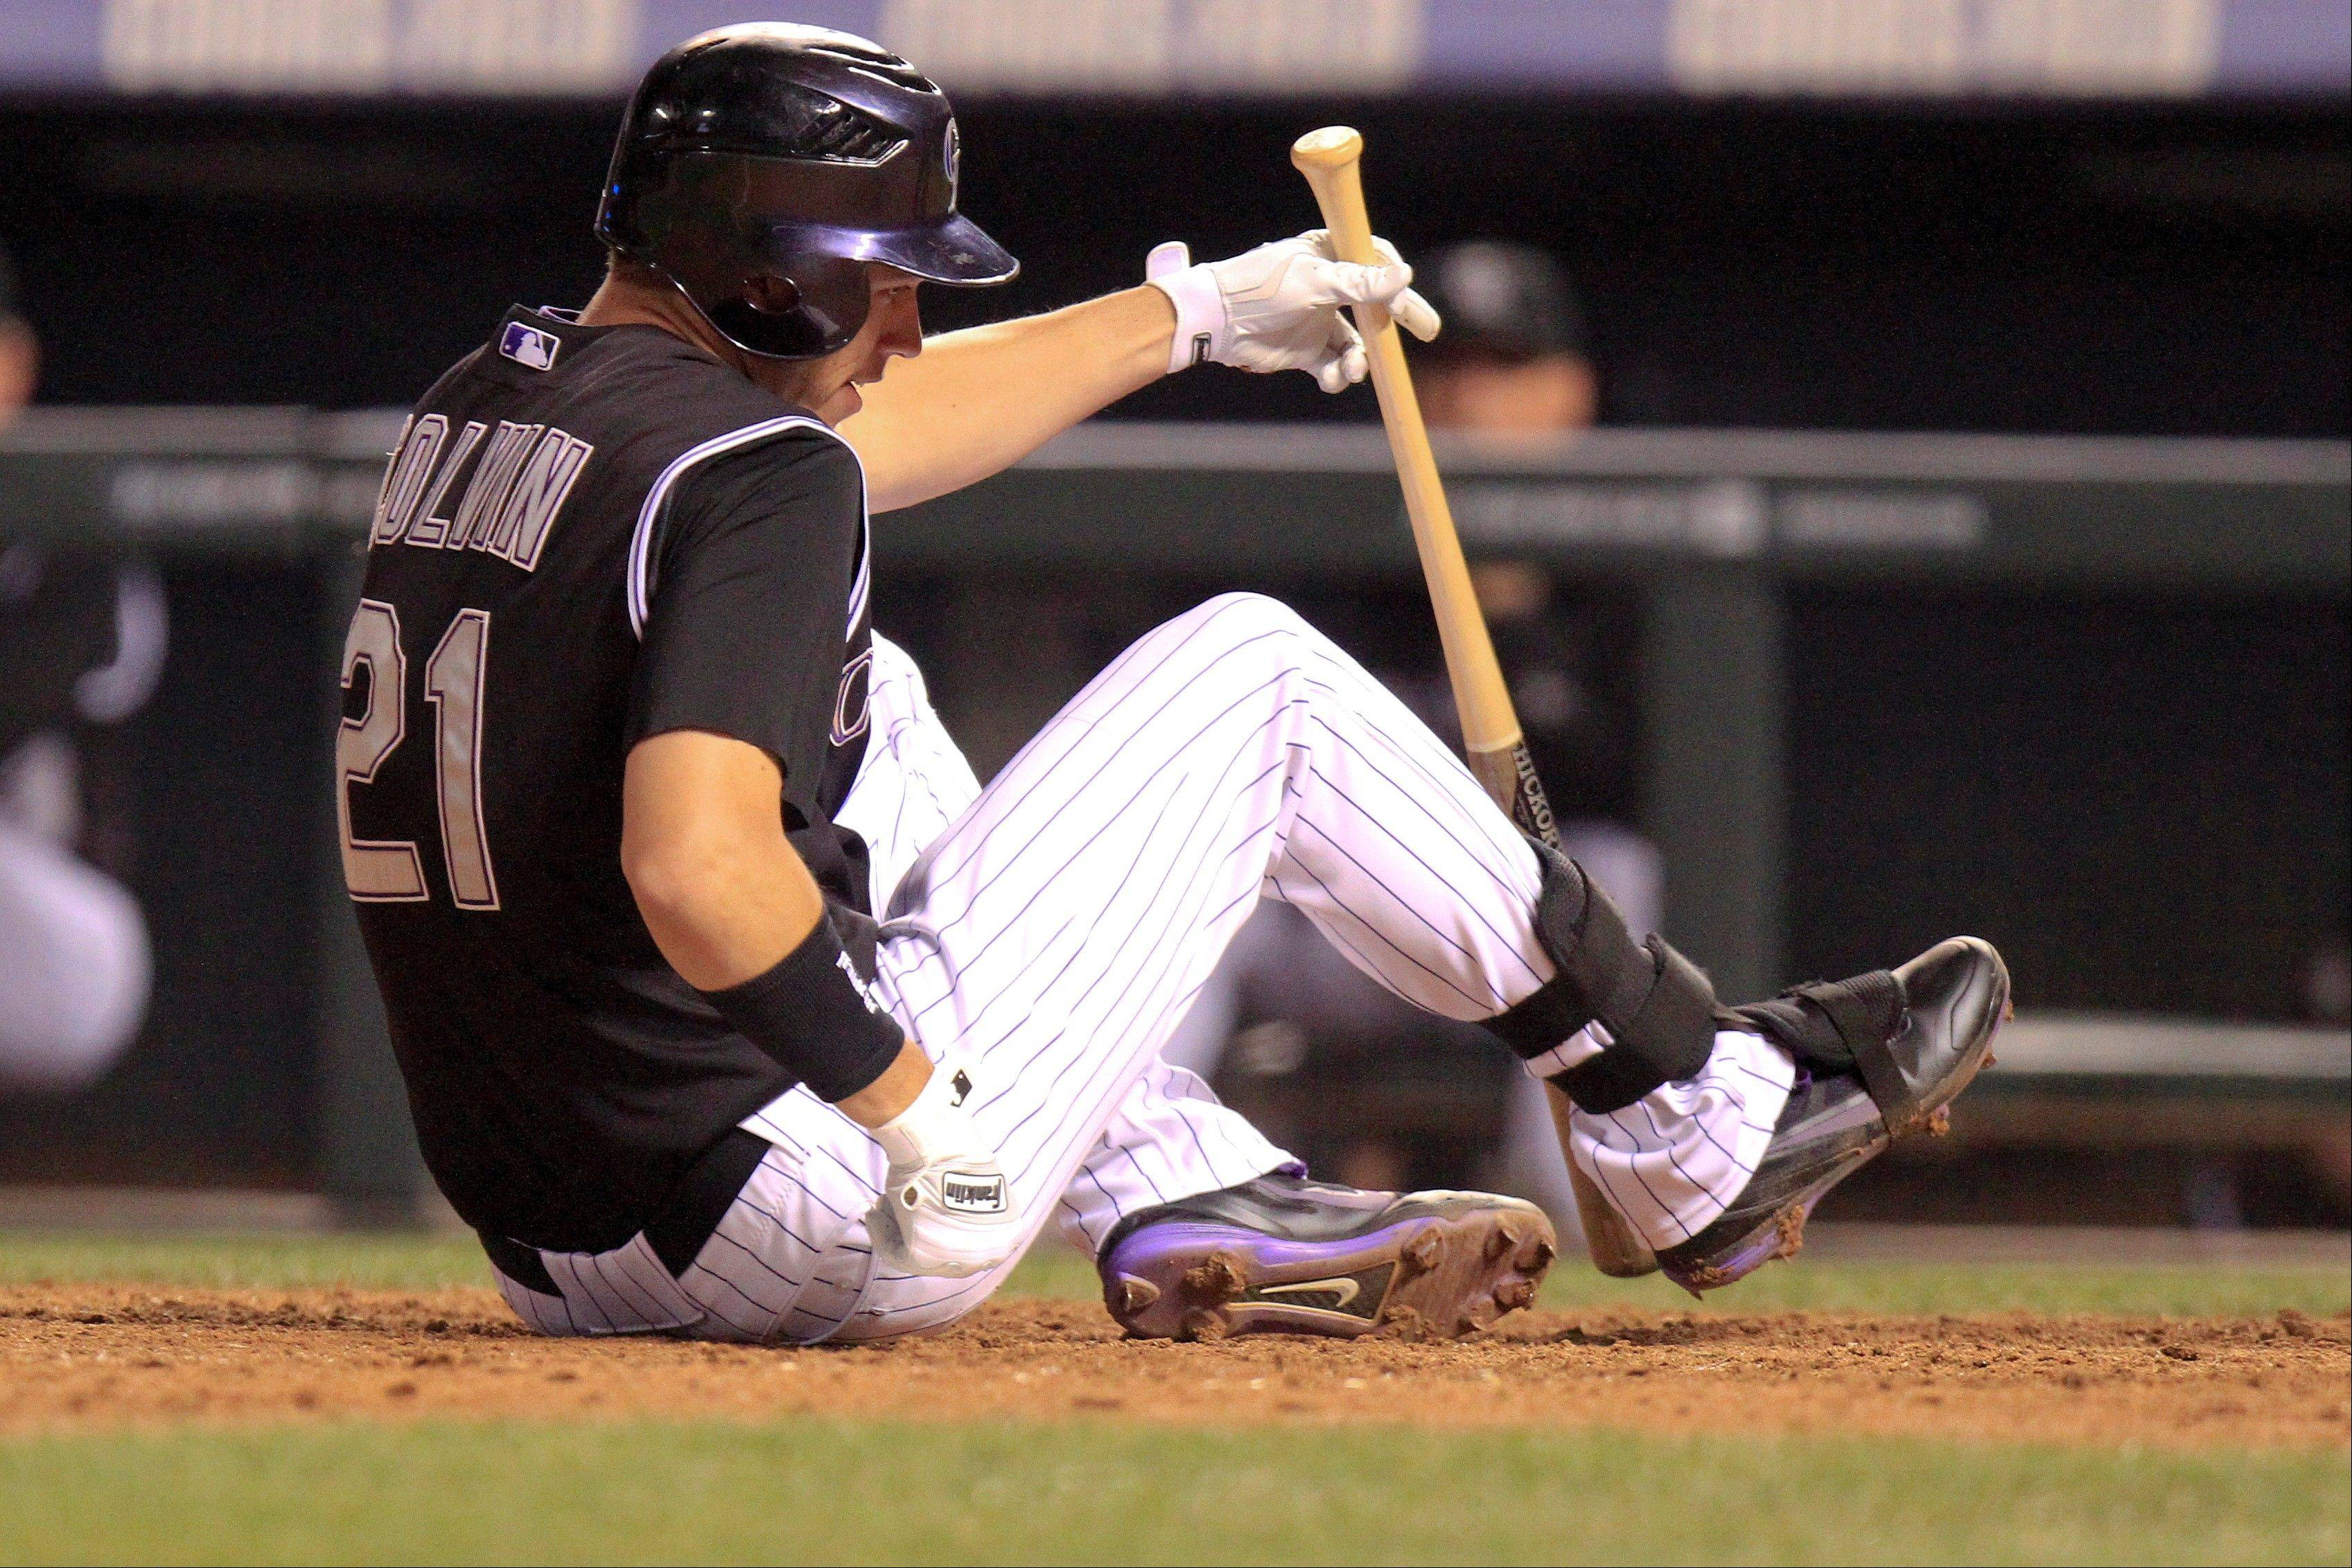 Tyler Colvin has 18 home runs and 67 RBI for the Rockies this season.